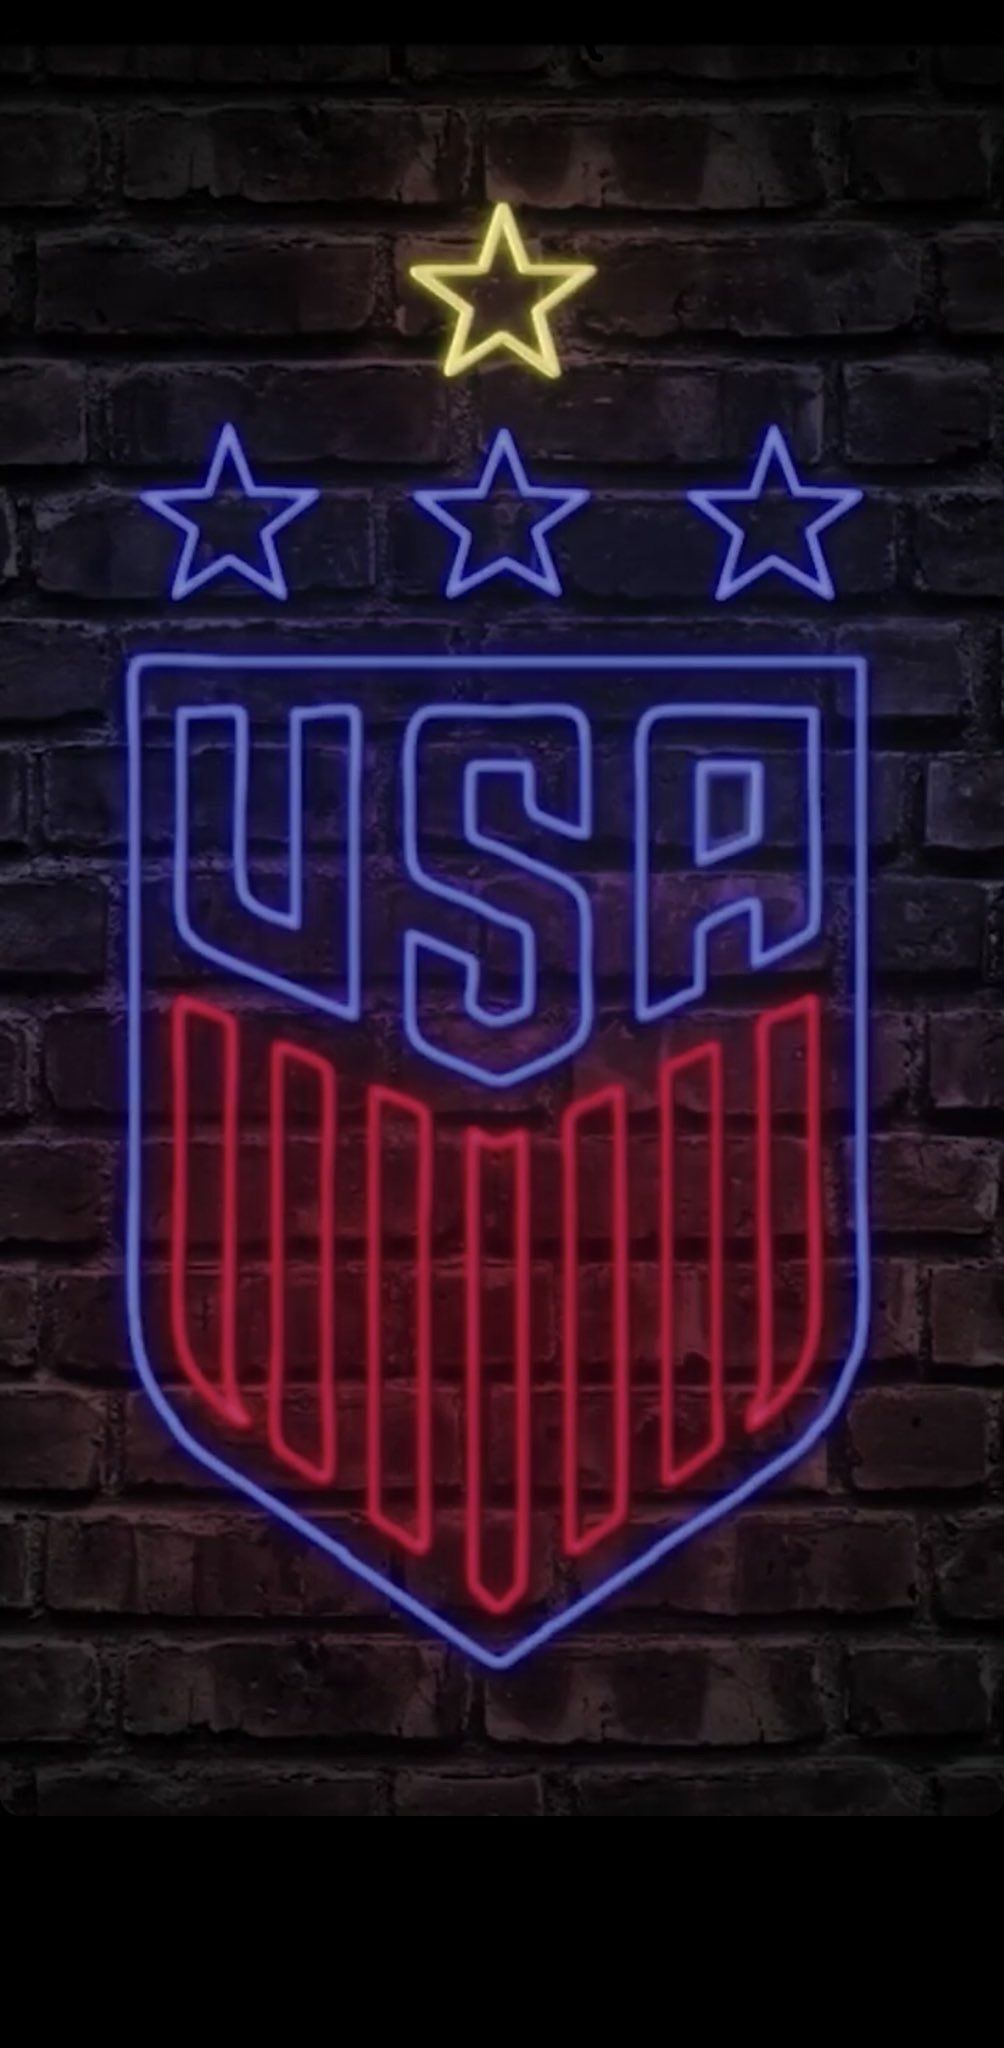 Pin by Angel. on Things I love ️ Uswnt, Usa soccer women